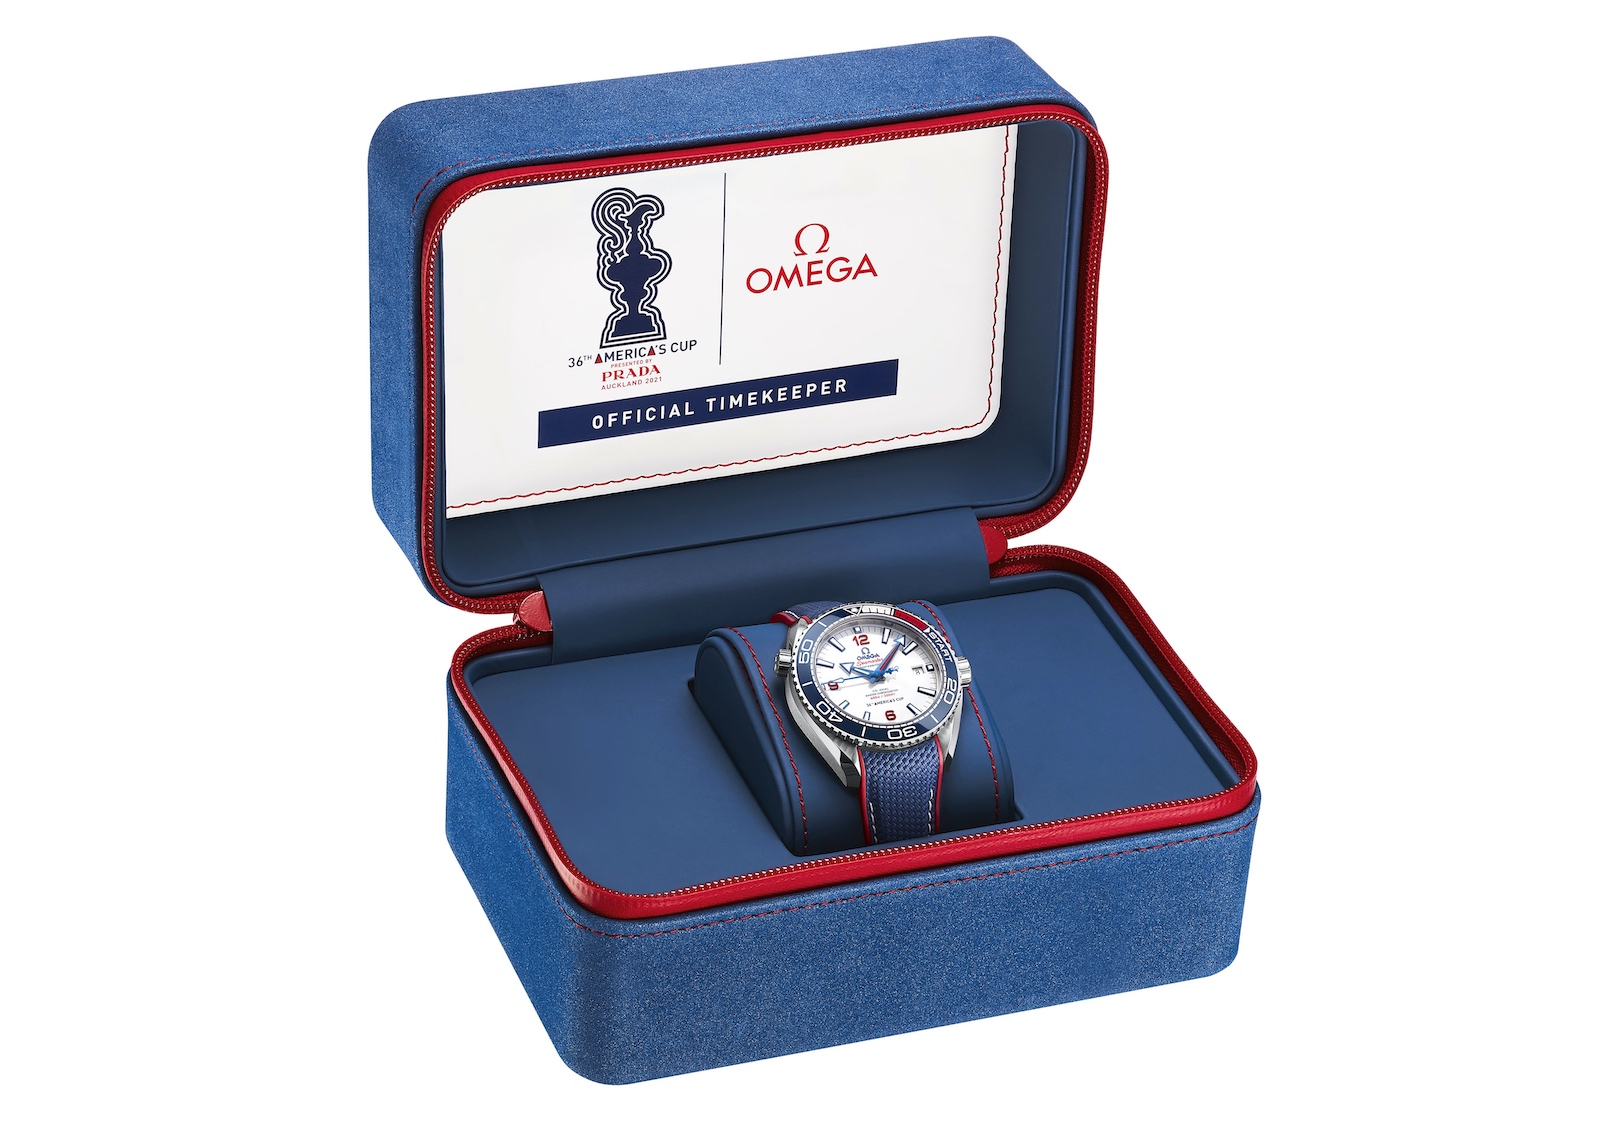 Omega Seamaster Planet Ocean 36th America's Cup - box